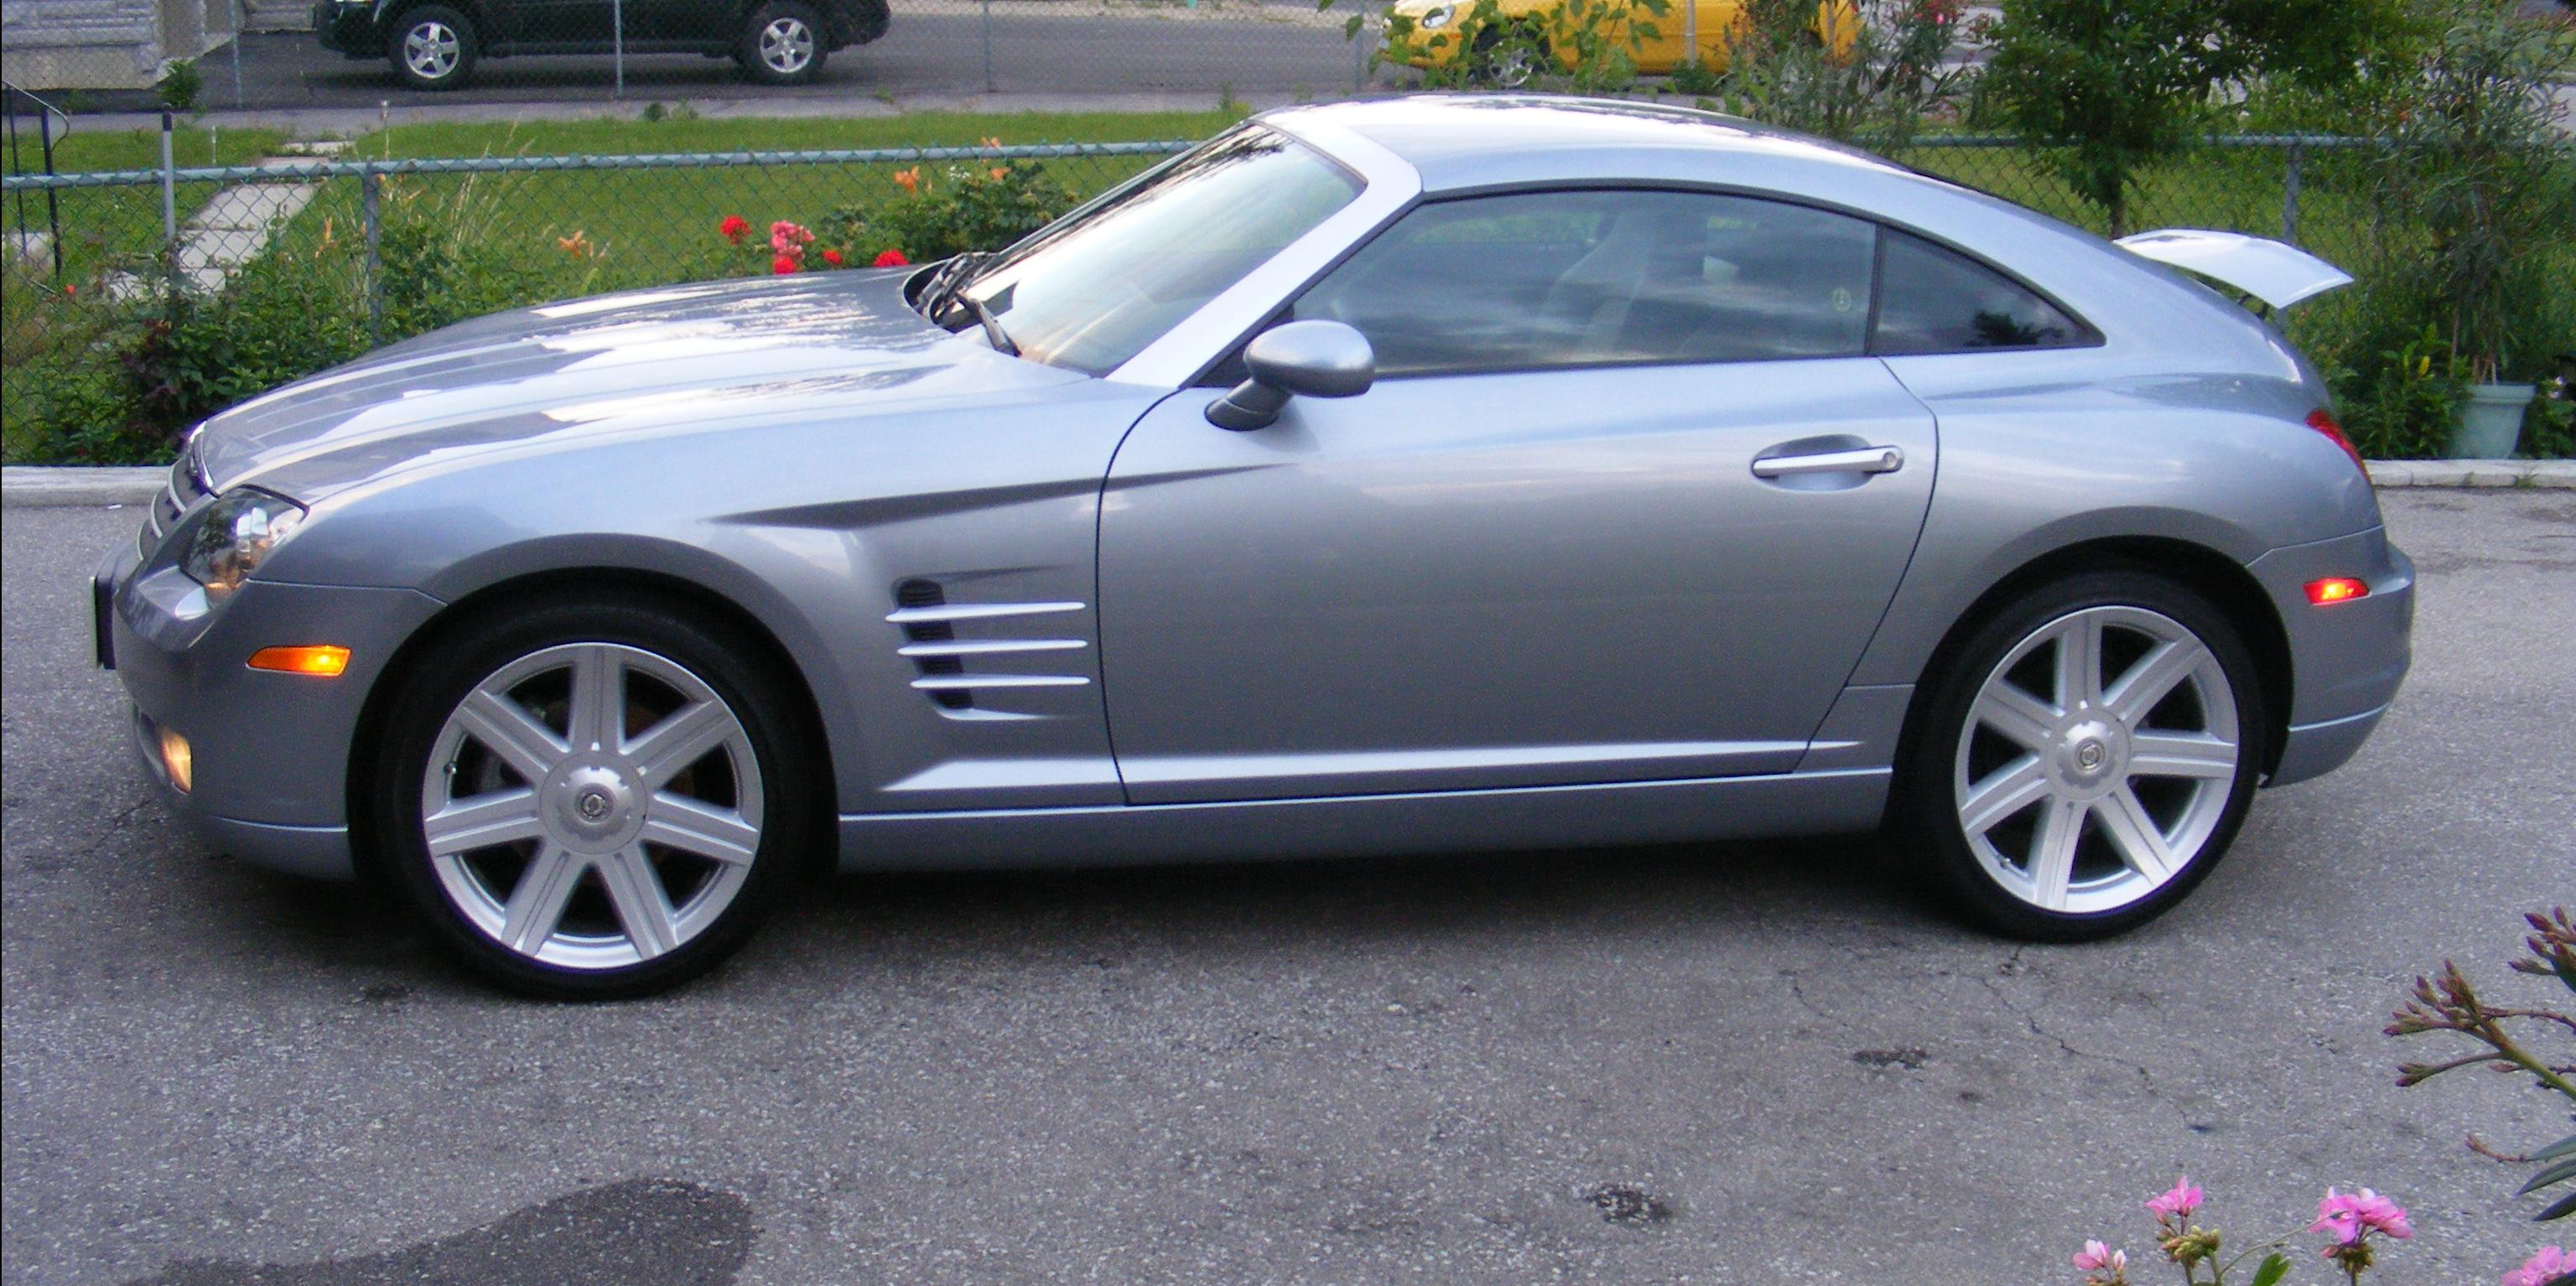 ... crossfire by youngking 12 photos donjulio765 s 2005 chrysler crossfire